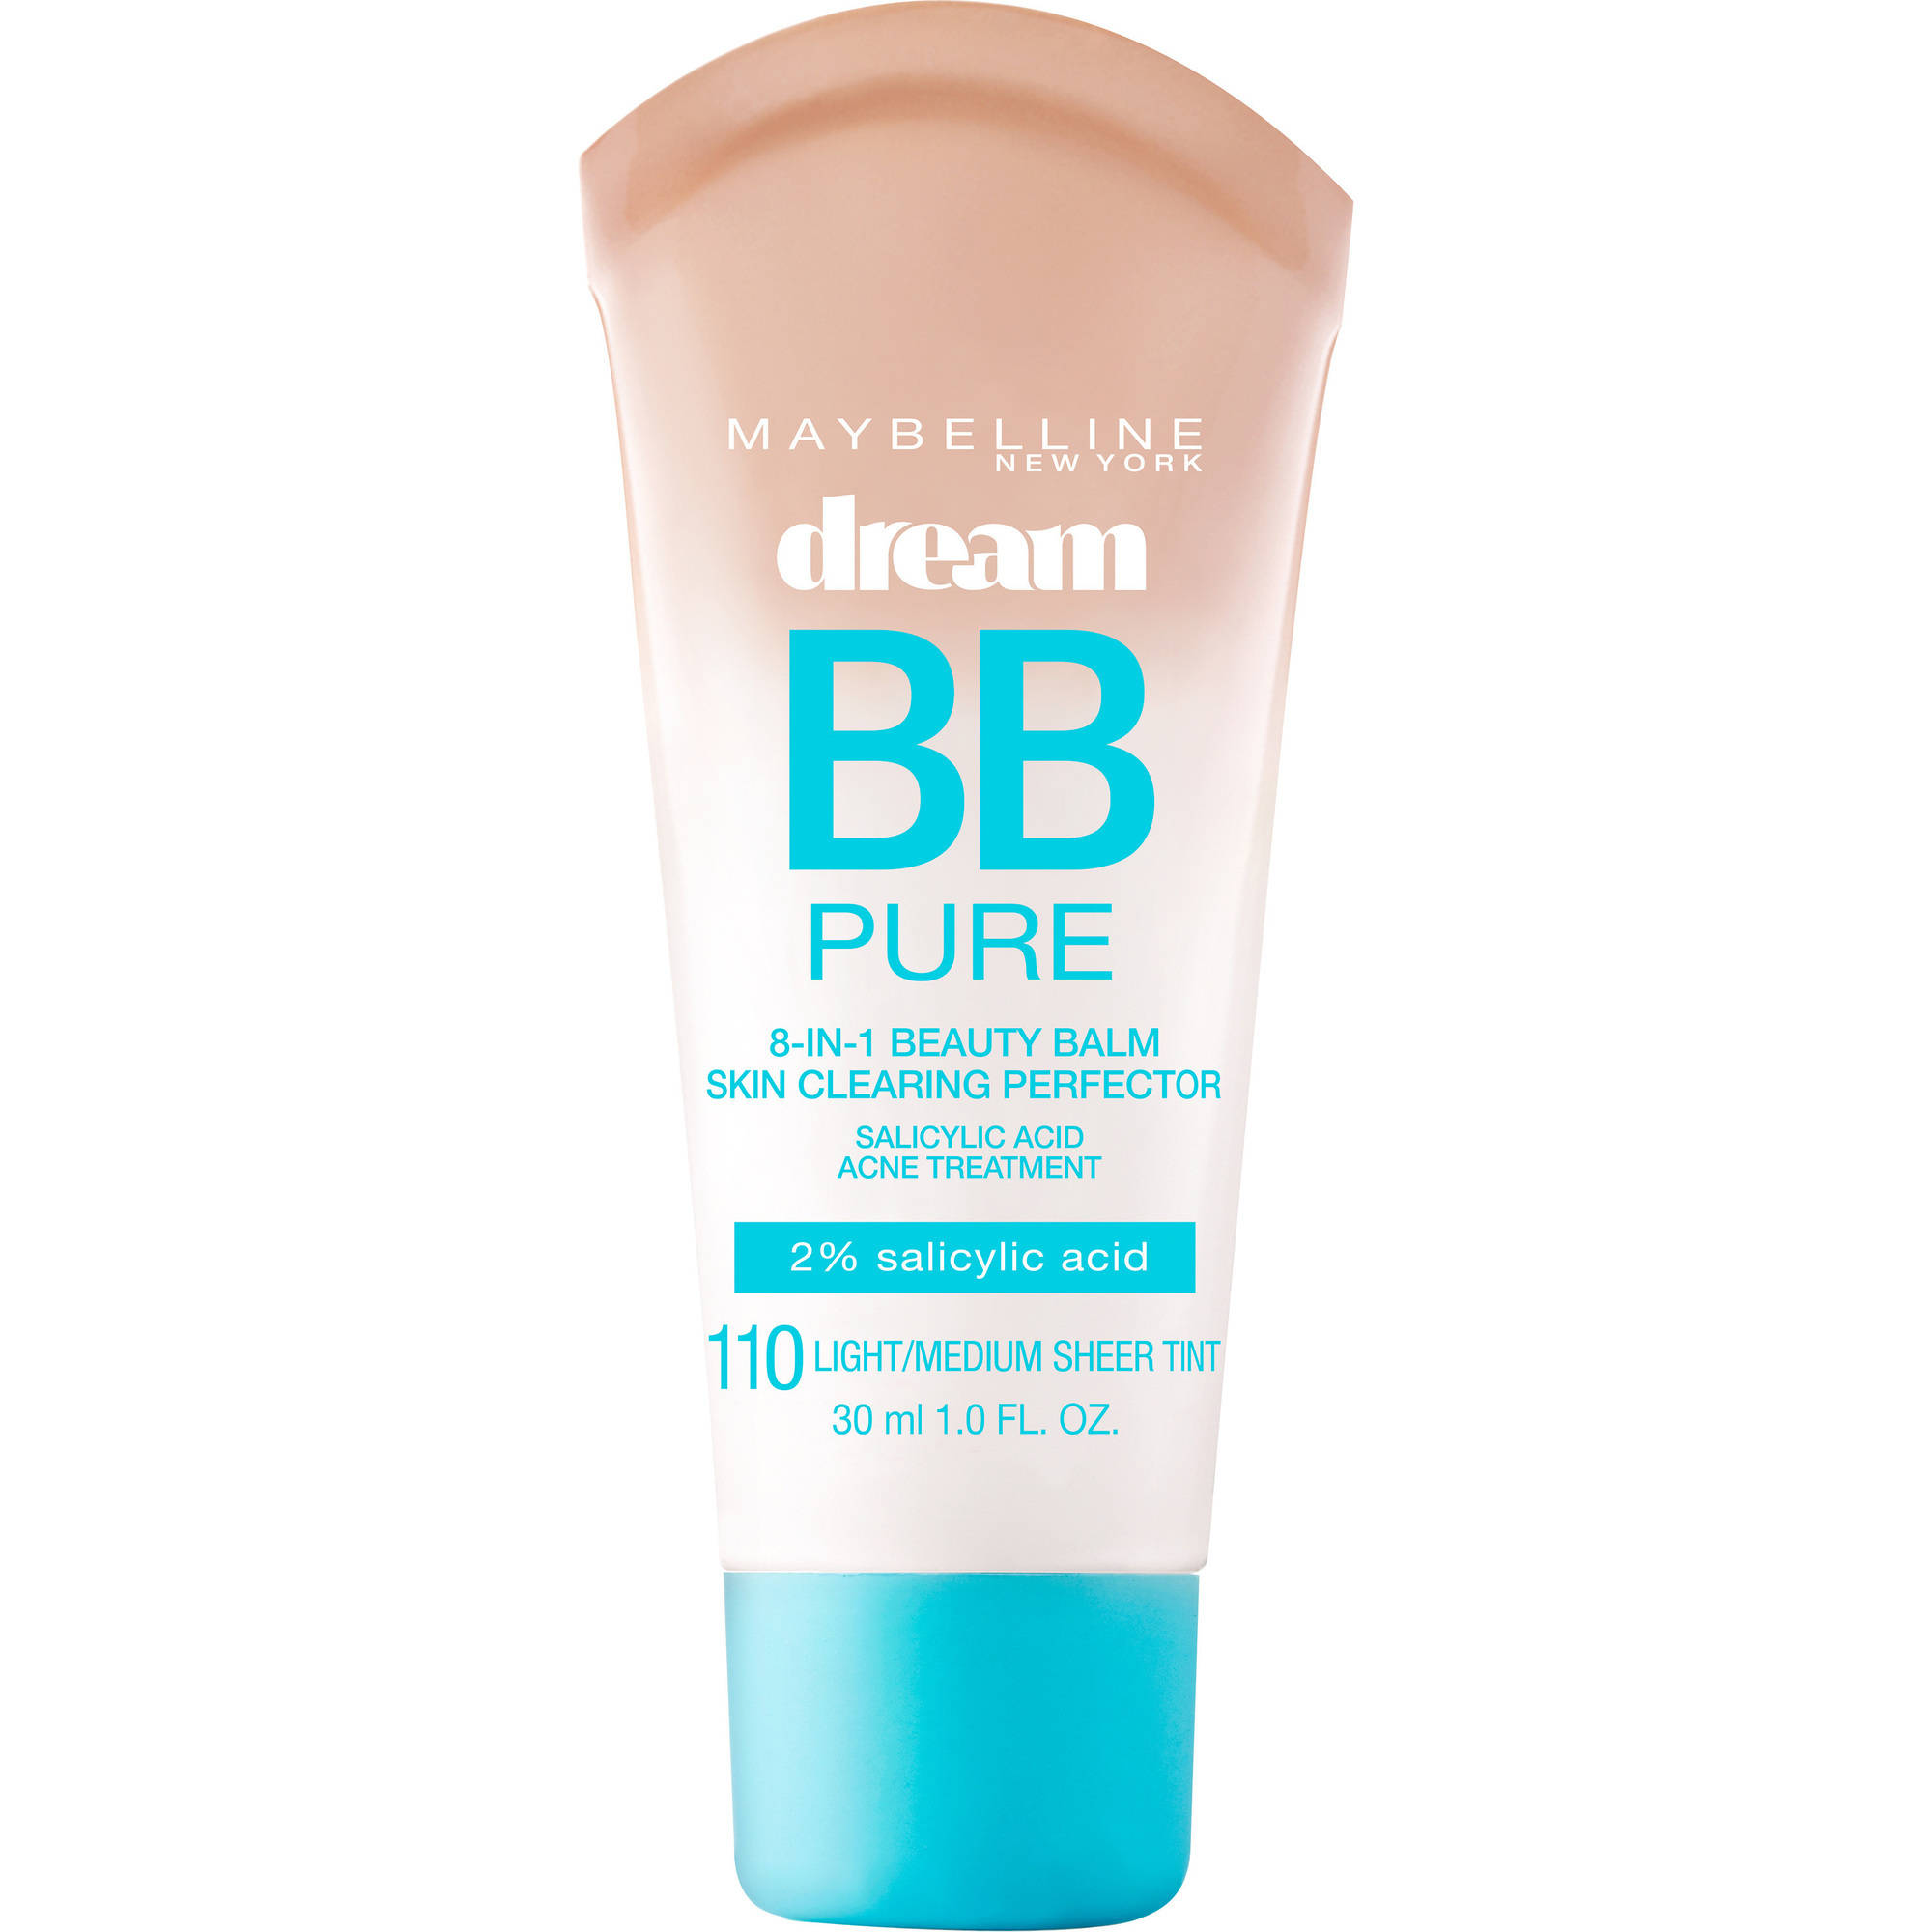 Maybelline Dream Pure BB 8-in-1 Skin Clearing Perfector